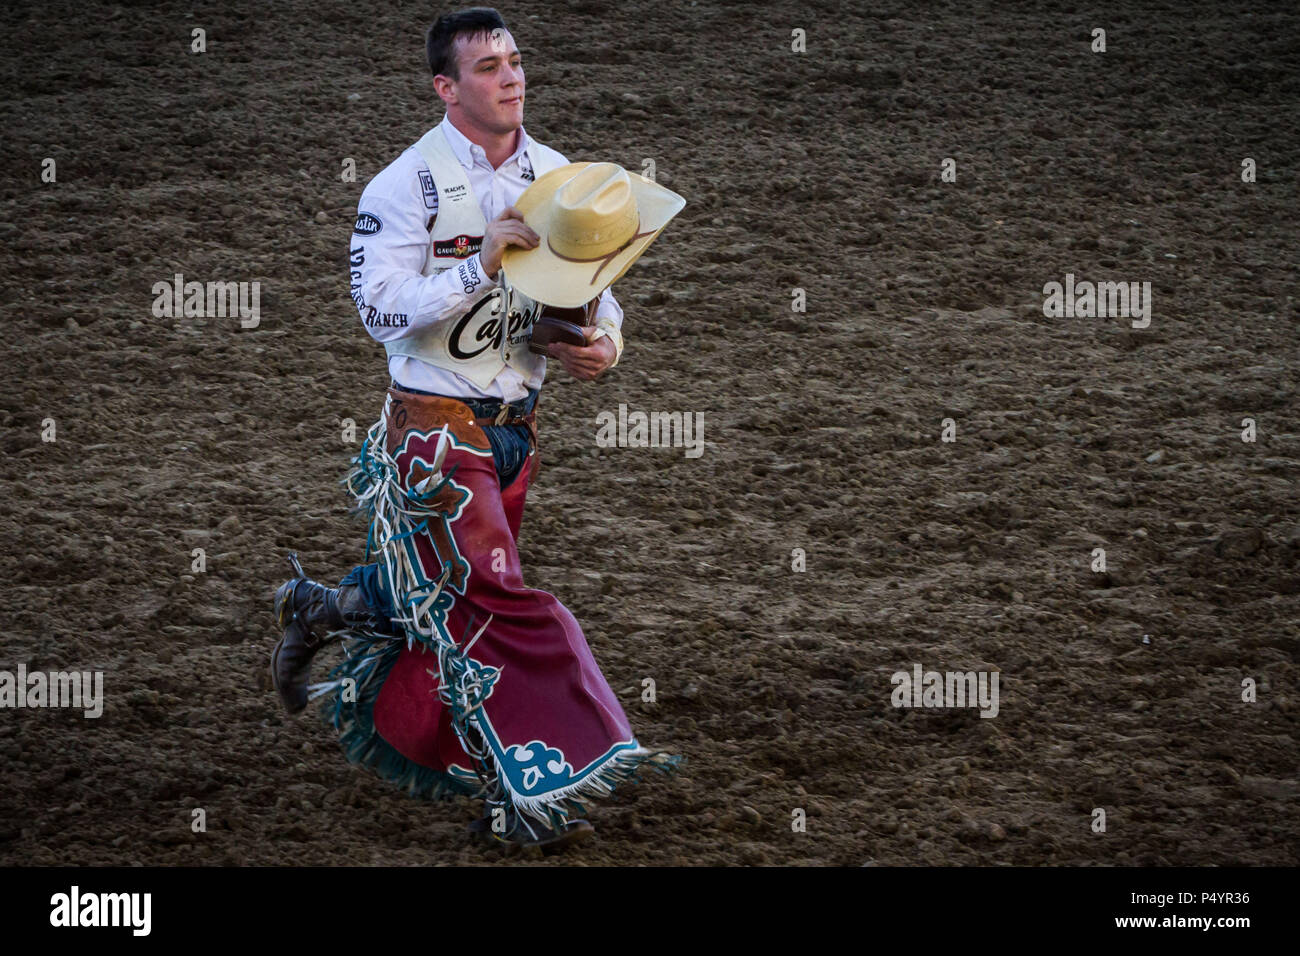 TIM O'CONNELL, of Zwingle, Iowa, walks through the Reno Rodeo ...